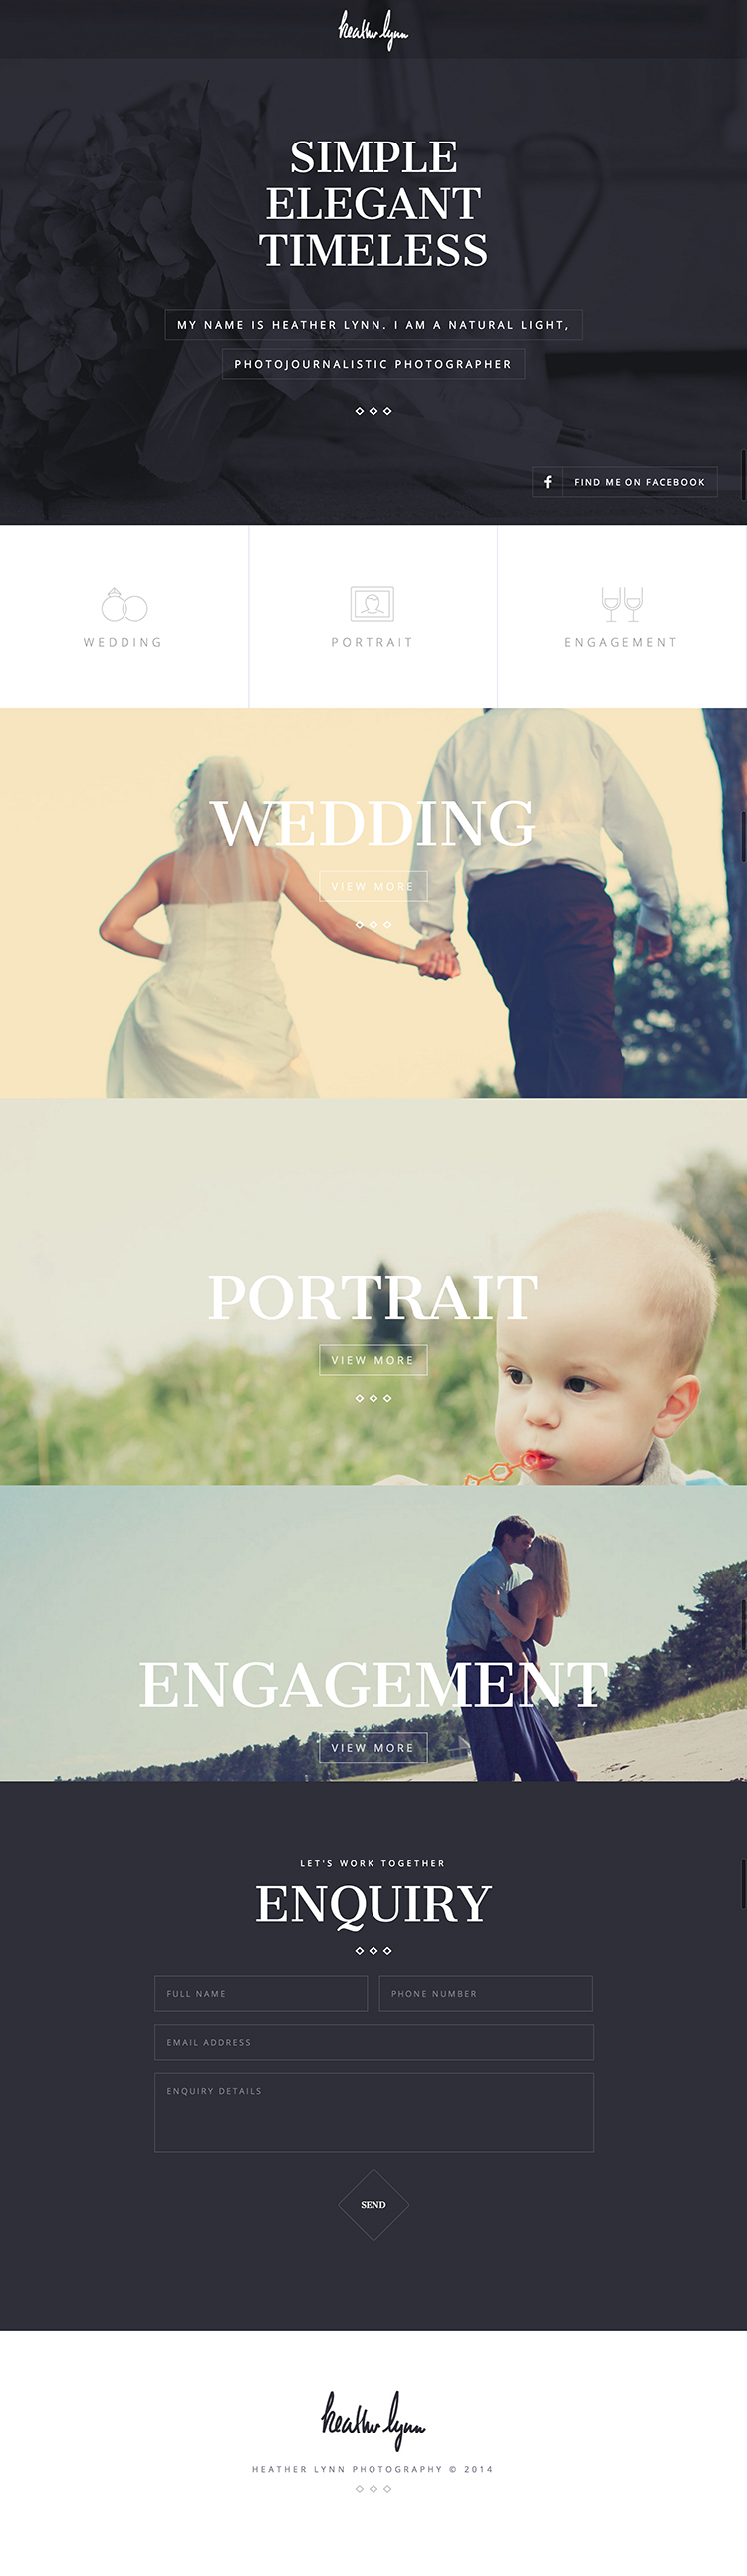 Heather Lynn Photography Wedding Engagement Portrait Photographer located in Houghton Michigan